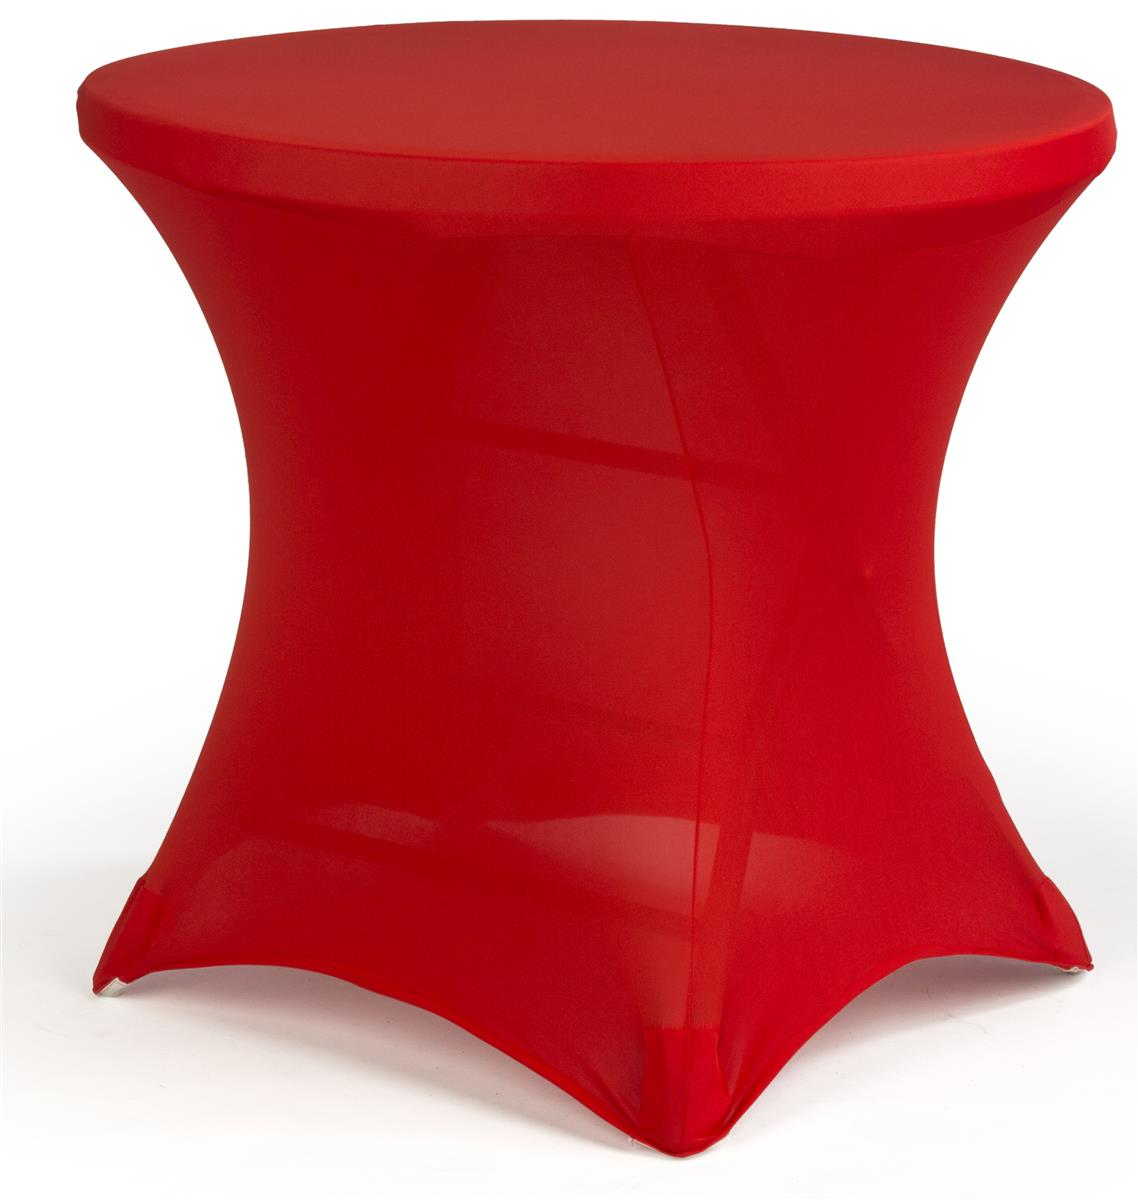 black spandex chair covers amazon glider replacement parts cocktail table cover red stretch fabric